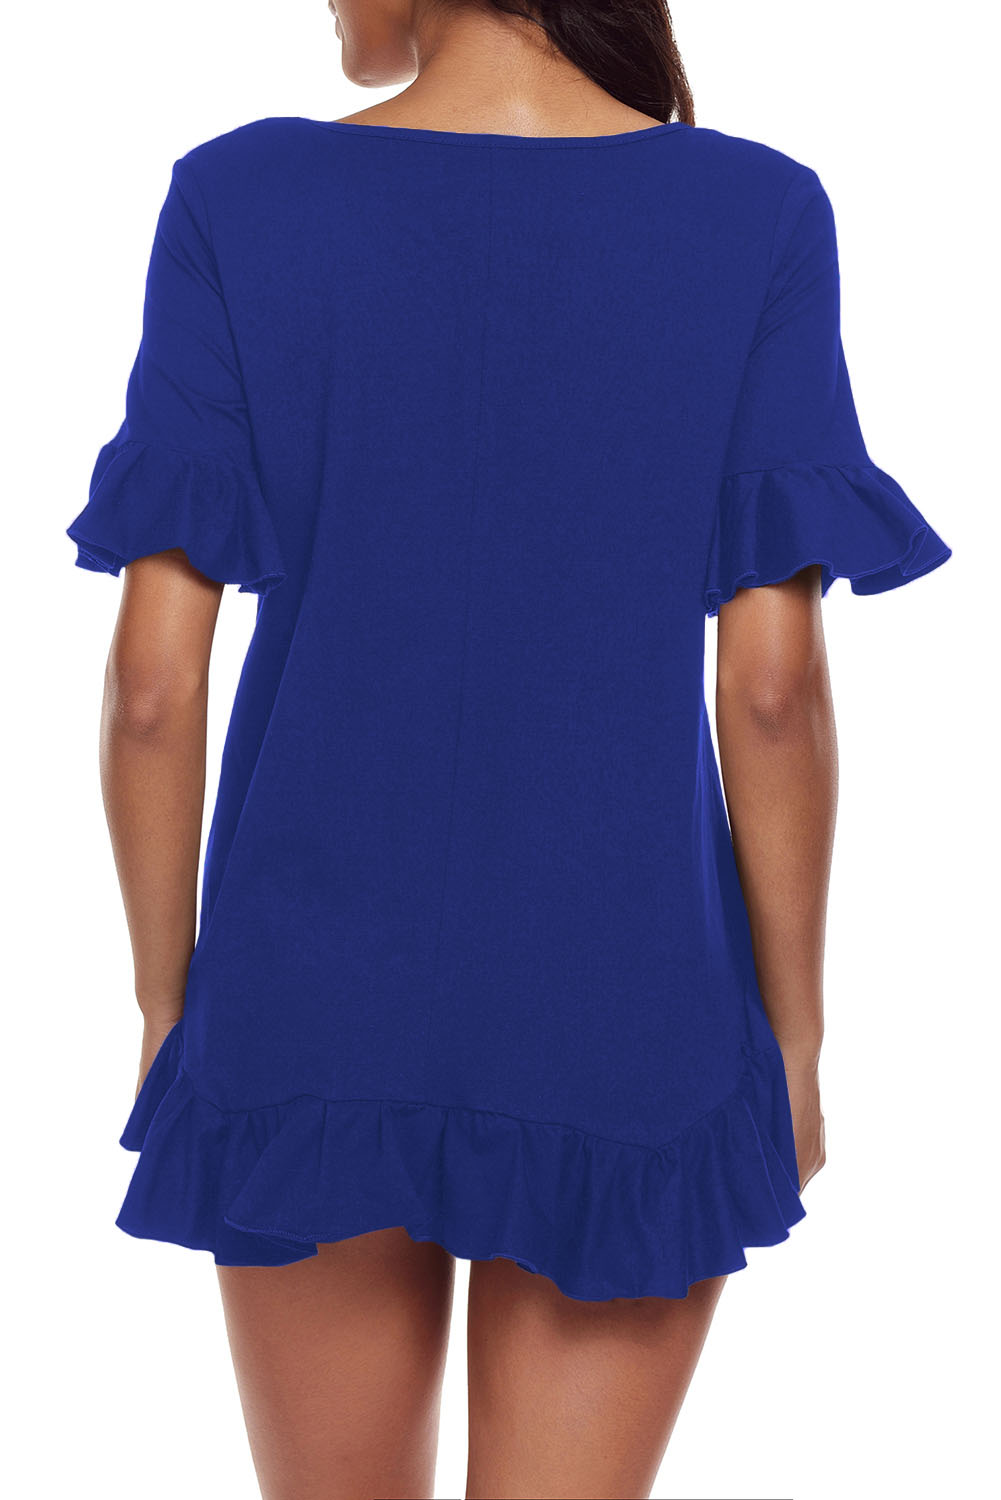 Royal-blue-rueschenbesatz-kurzarm-flowy-top-bluse-shirt-tunika-kleid-damen